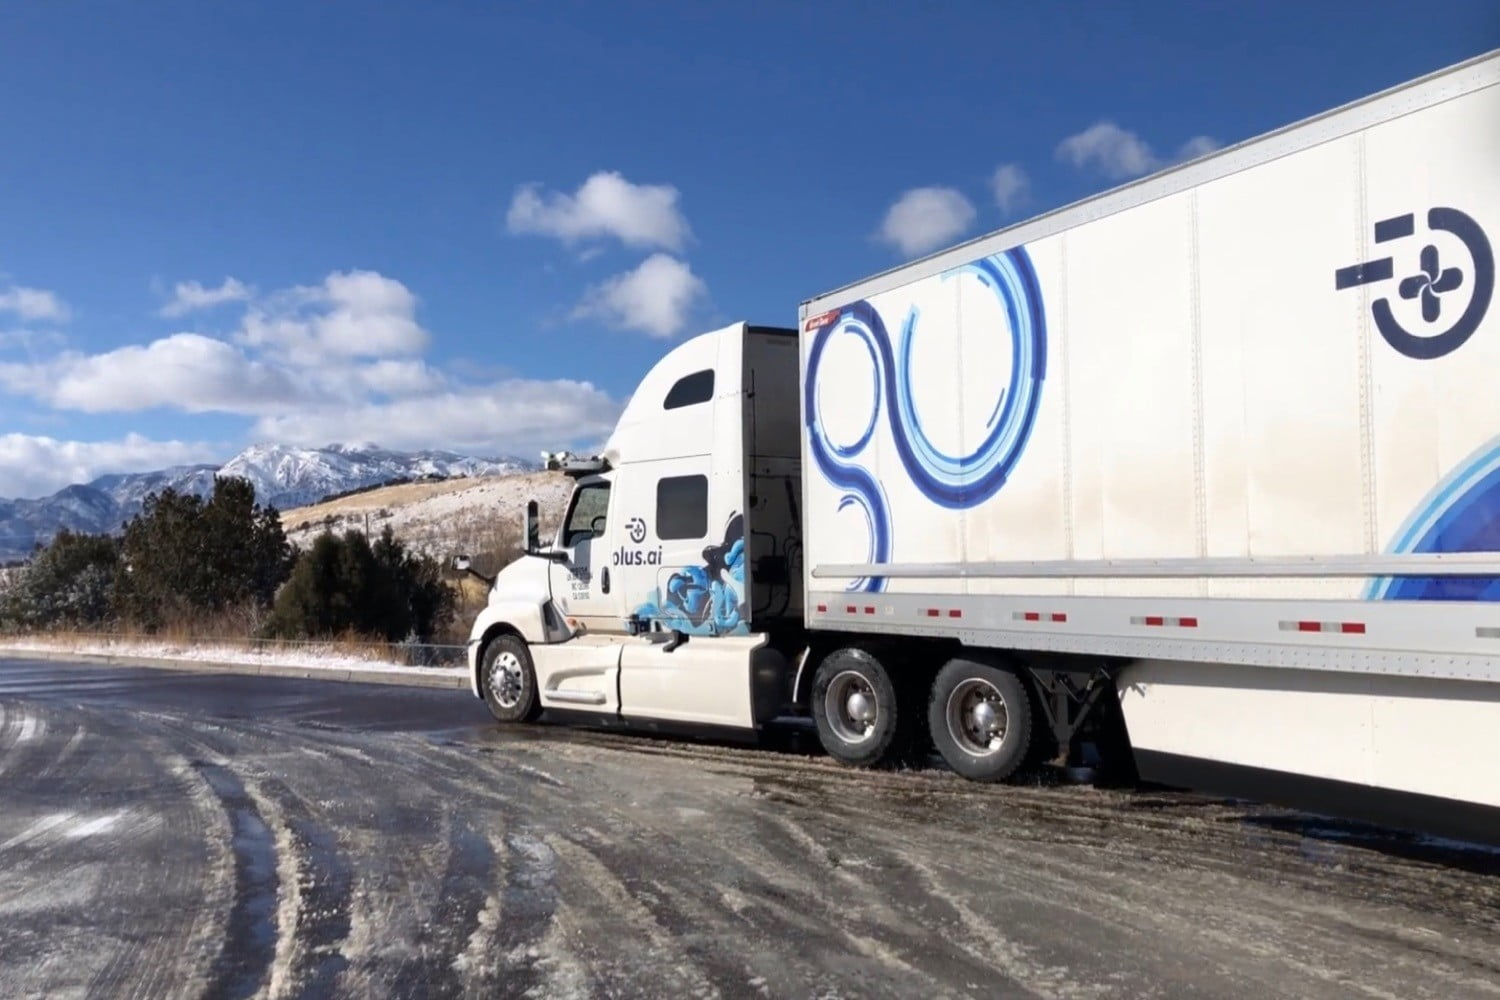 This autonomous truck just made a cross-country grocery run